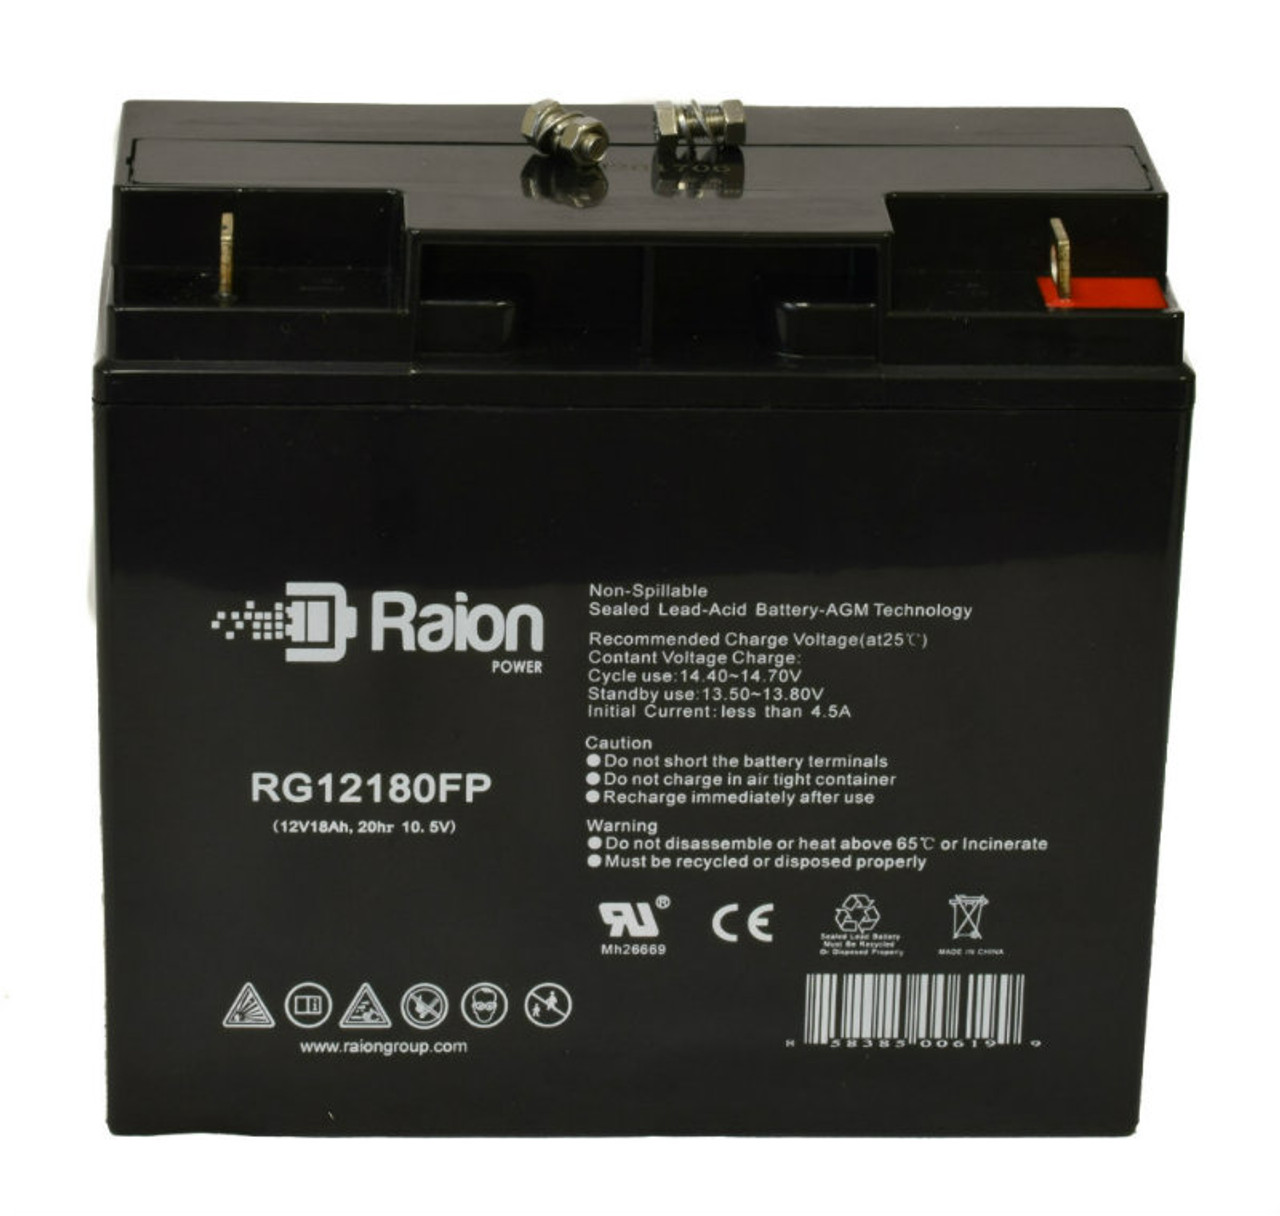 RG12180FP Sealed Lead Acid OEM Replacement Battery For Amigo Fiesta III Electric Wheelchair